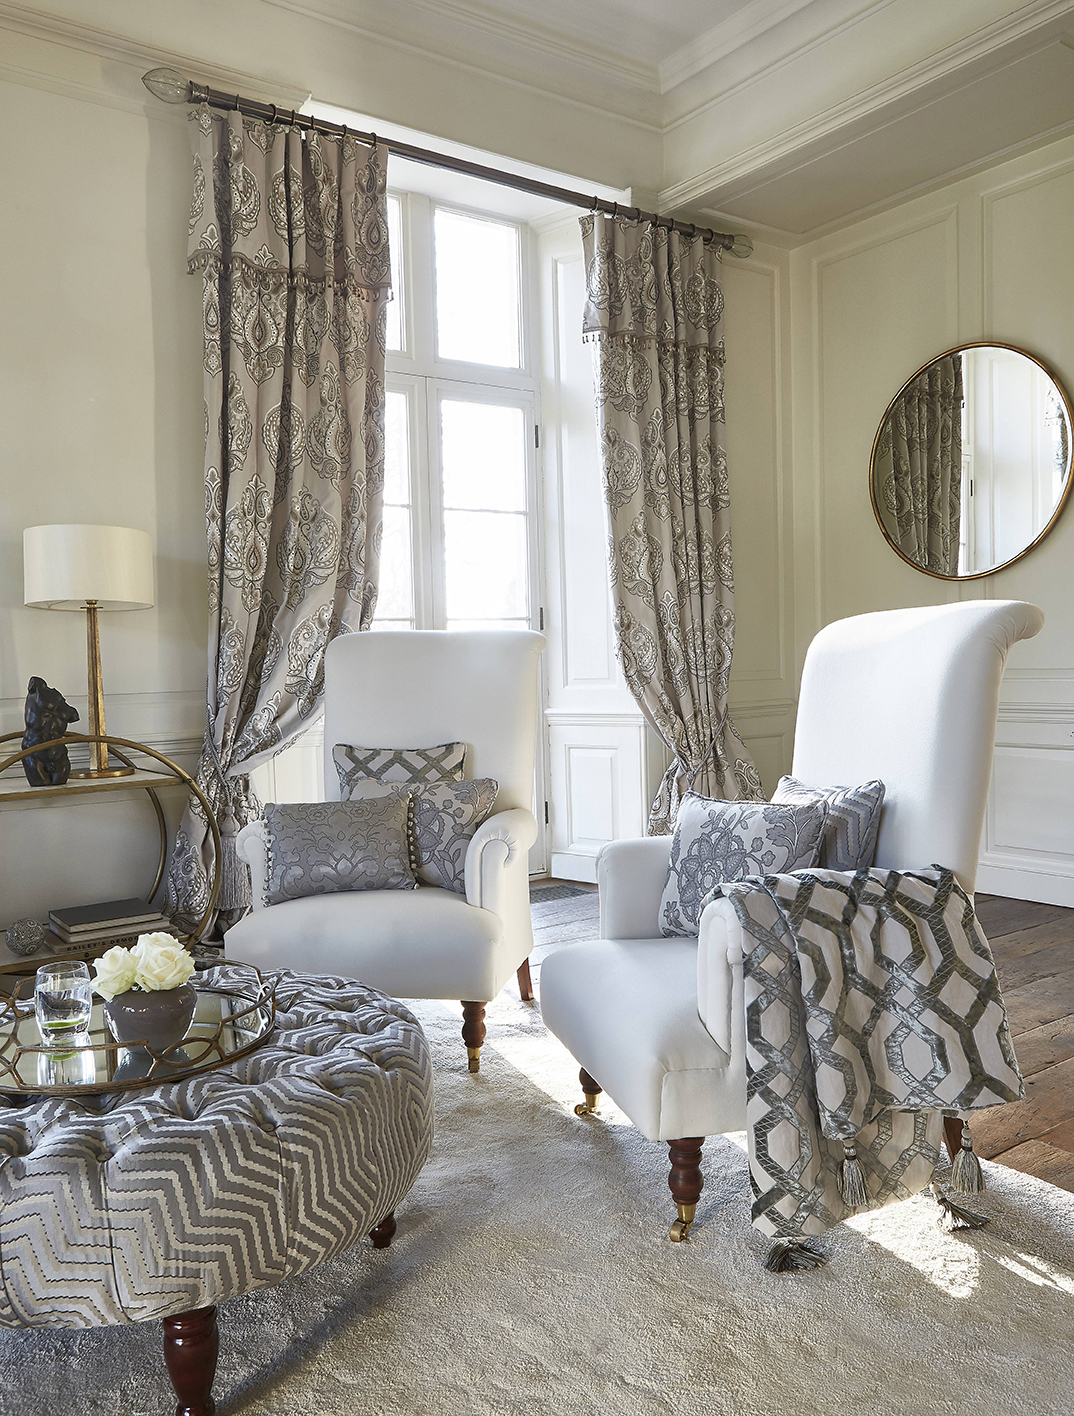 Victoria & Scarlet - Bespoke Window Dressing And Furnishings For Homes And Business